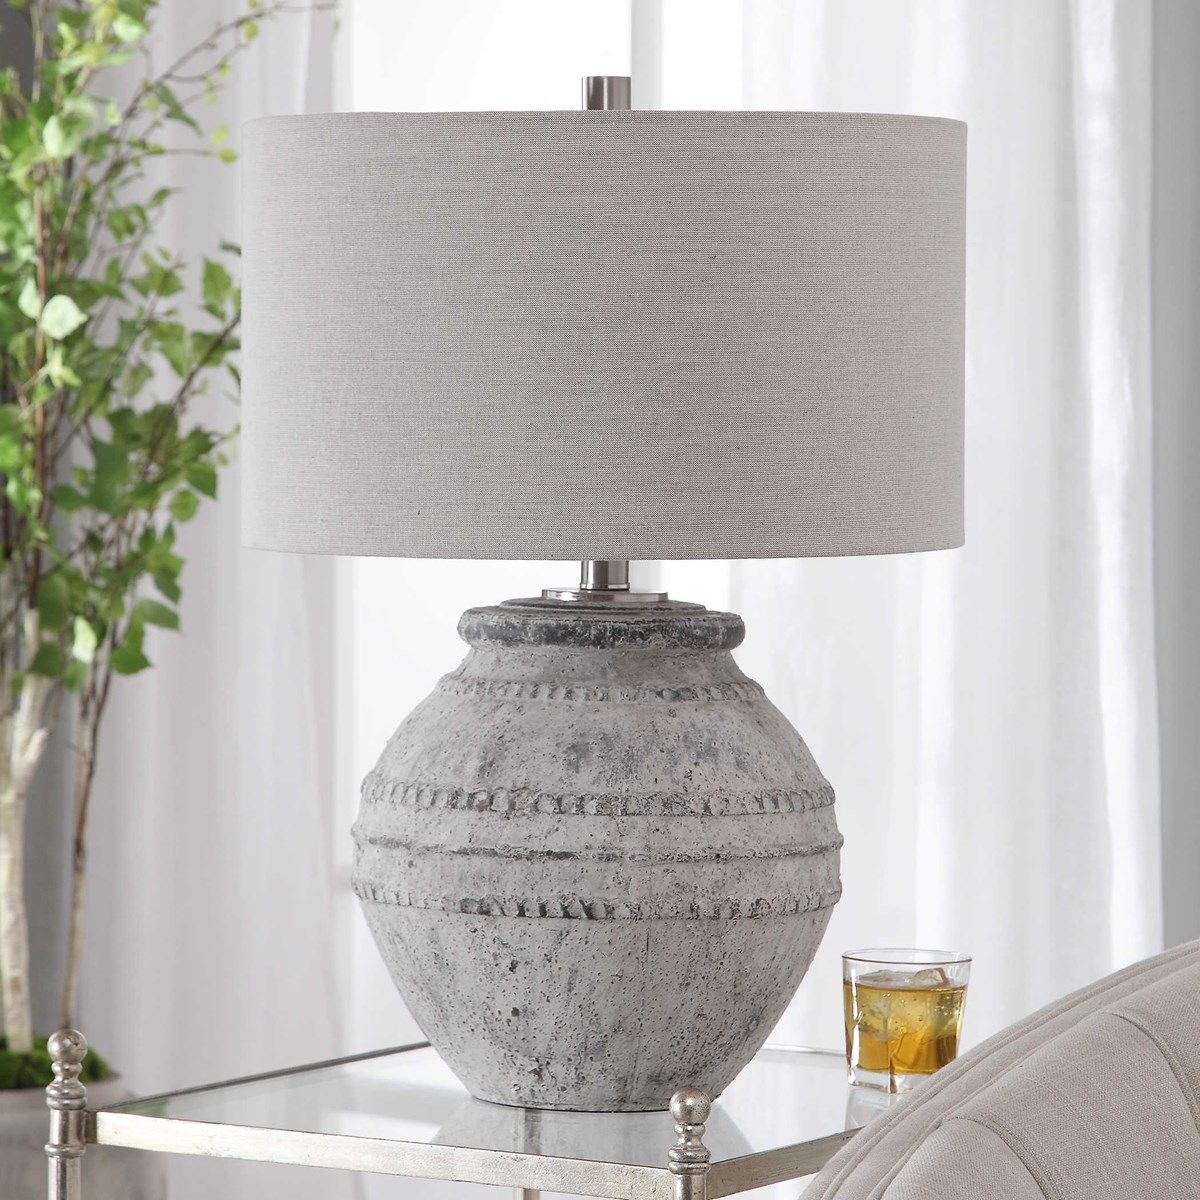 Montsant Table Lamp Uttermost In 2020 Ceramic Table Lamps Table Lamp Table Lamp Design